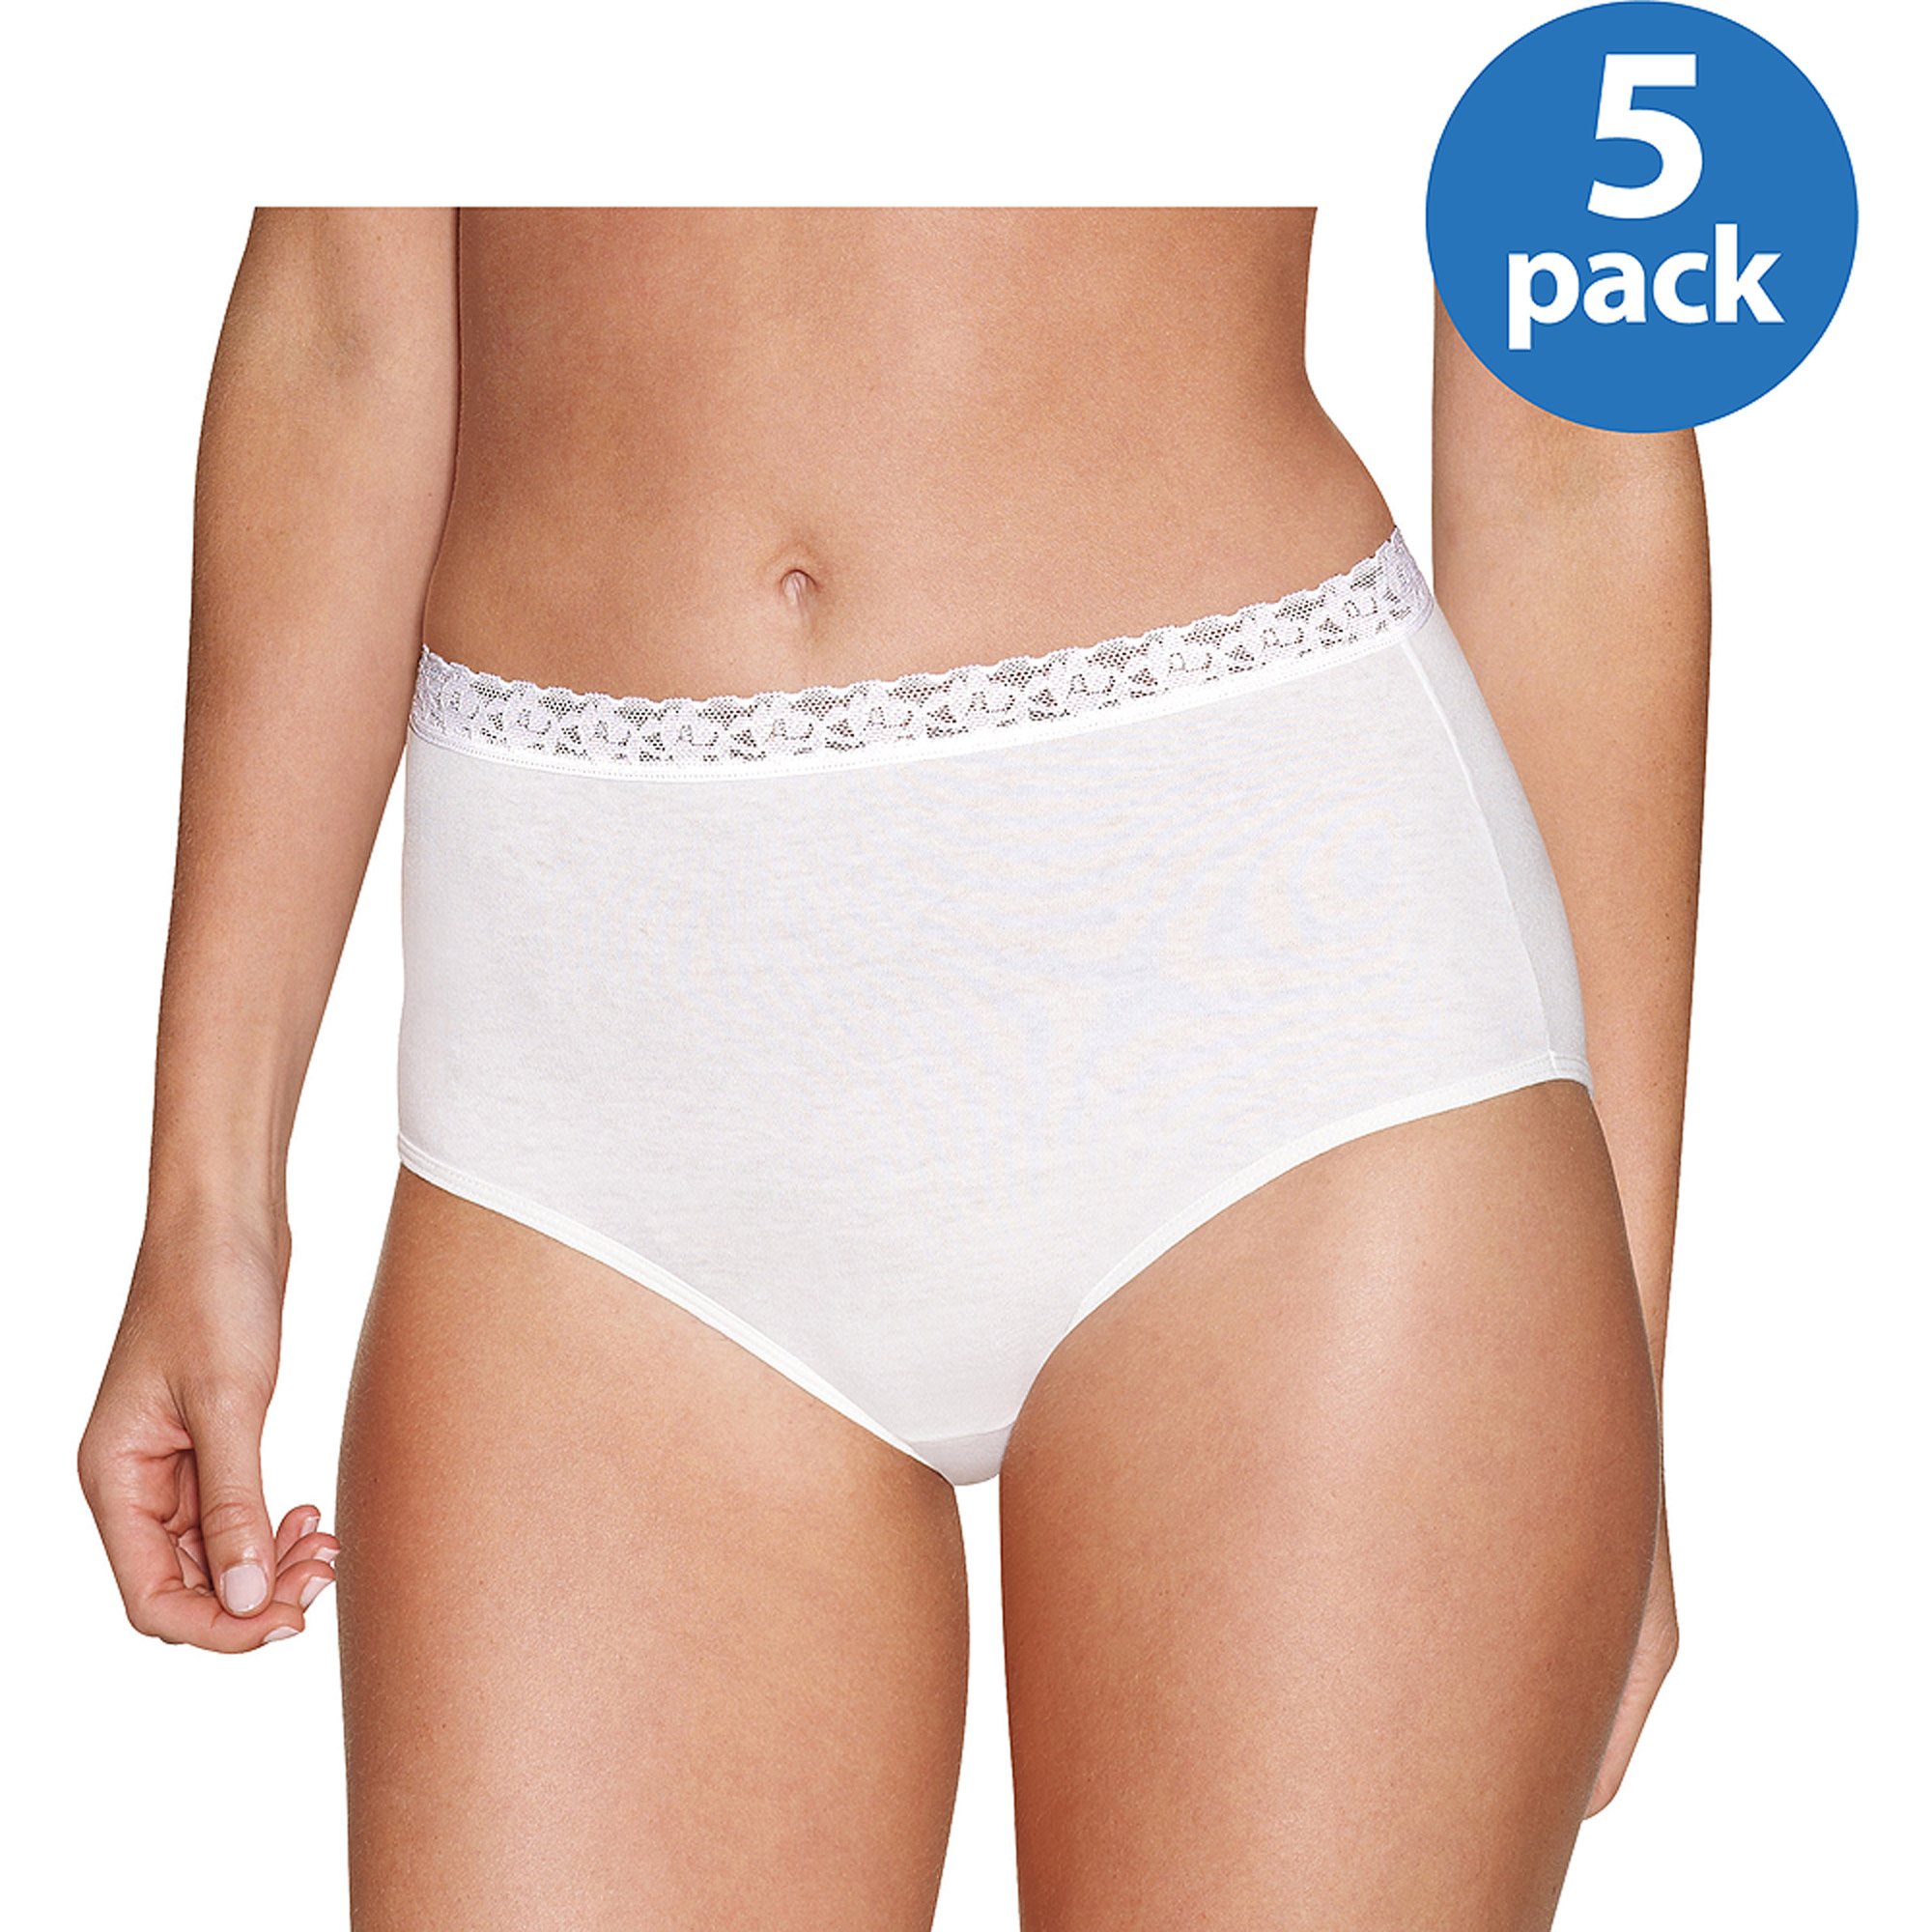 Hanes Women's Cotton Brief with Lace 5 Pack